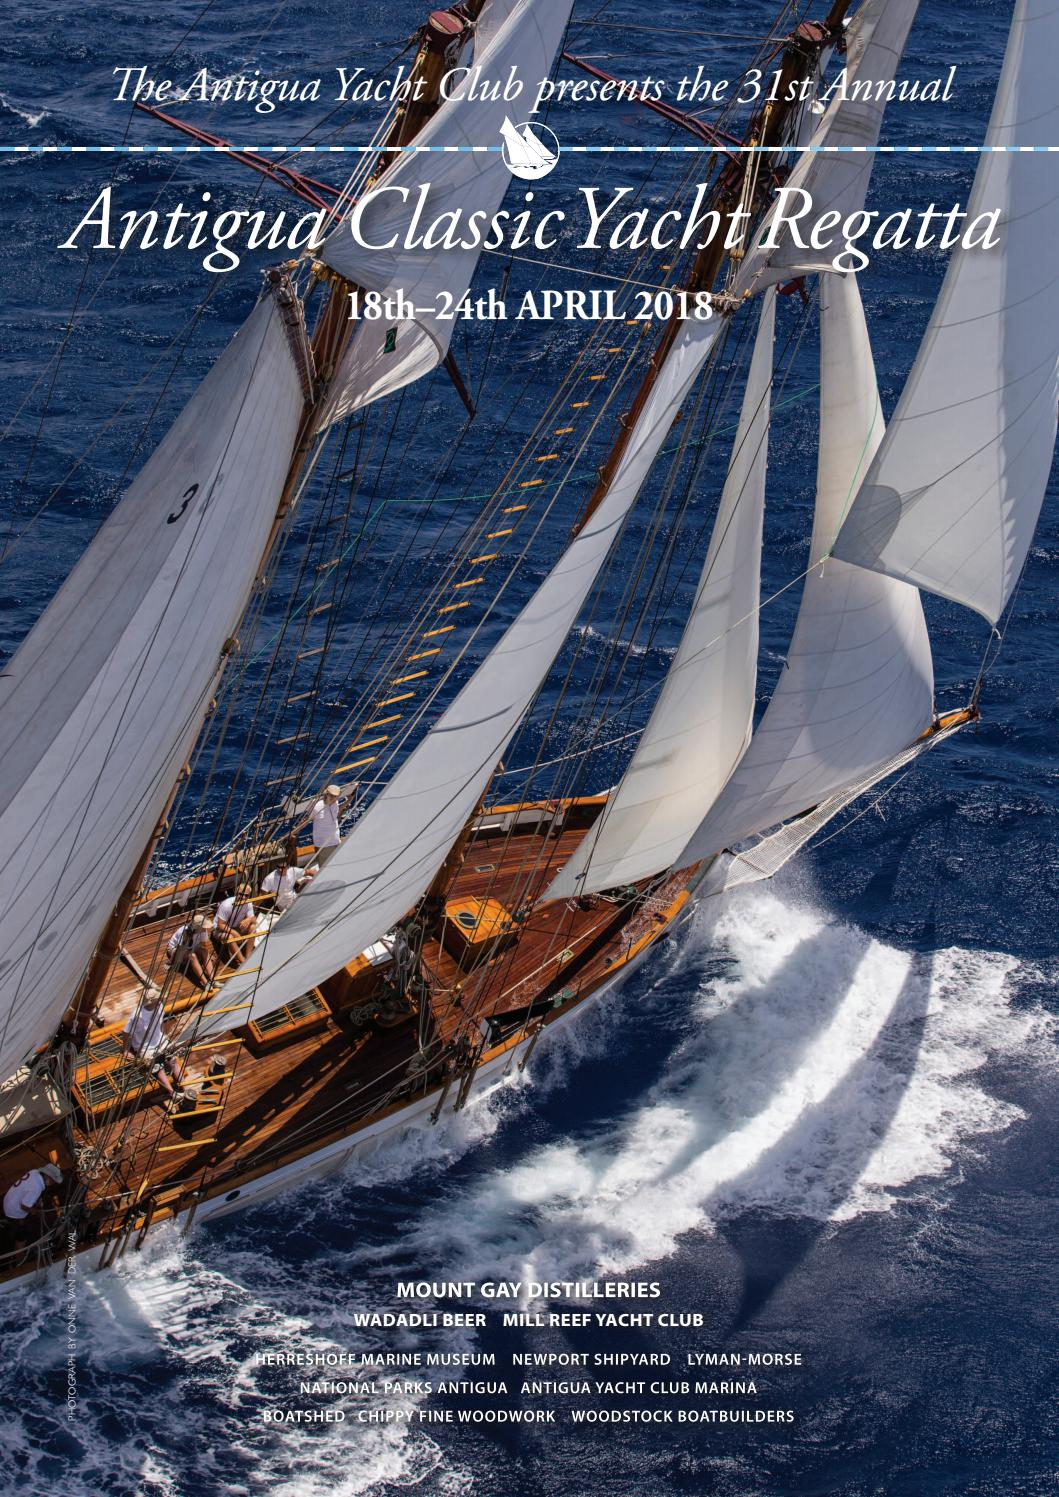 Antigua Classic Yacht Regatta Programme 2018 By Antigua Yacht Club